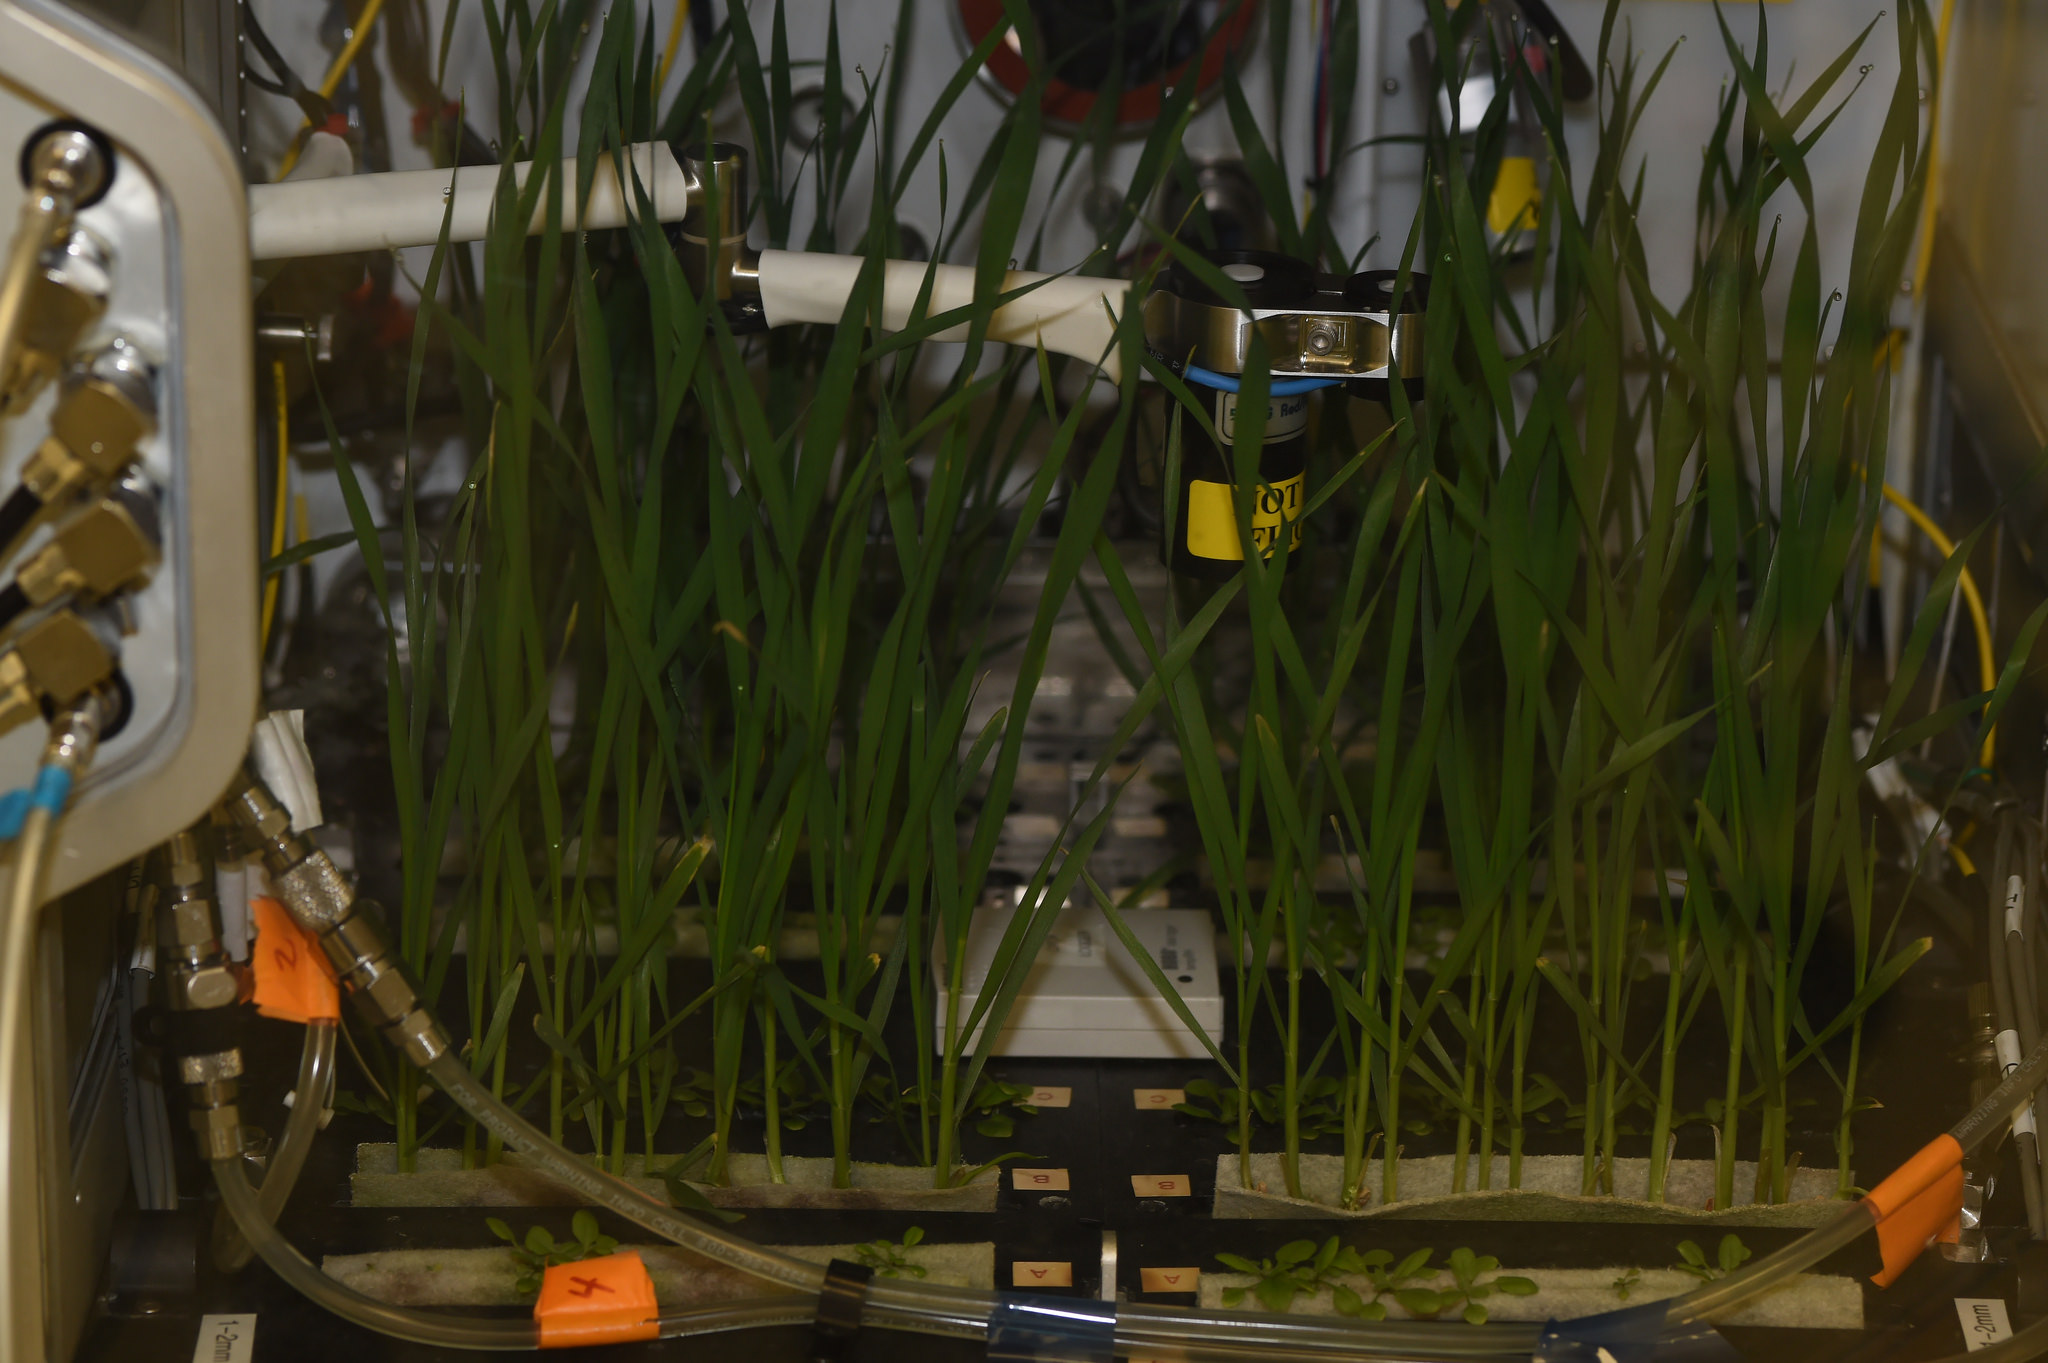 A test unit, or prototype, of NASA's Advanced Plant Habitat (APH) with its first initial grow test in the Space Station Processing Facility at Kennedy Space Center in Florida. The taller plants are dwarf what and the smaller plants are Arabidopsis. Developed by NASA and ORBITEC of Madison, Wisconsin, the APH is the largest plant chamber built for the agency. Photo credit: NASA